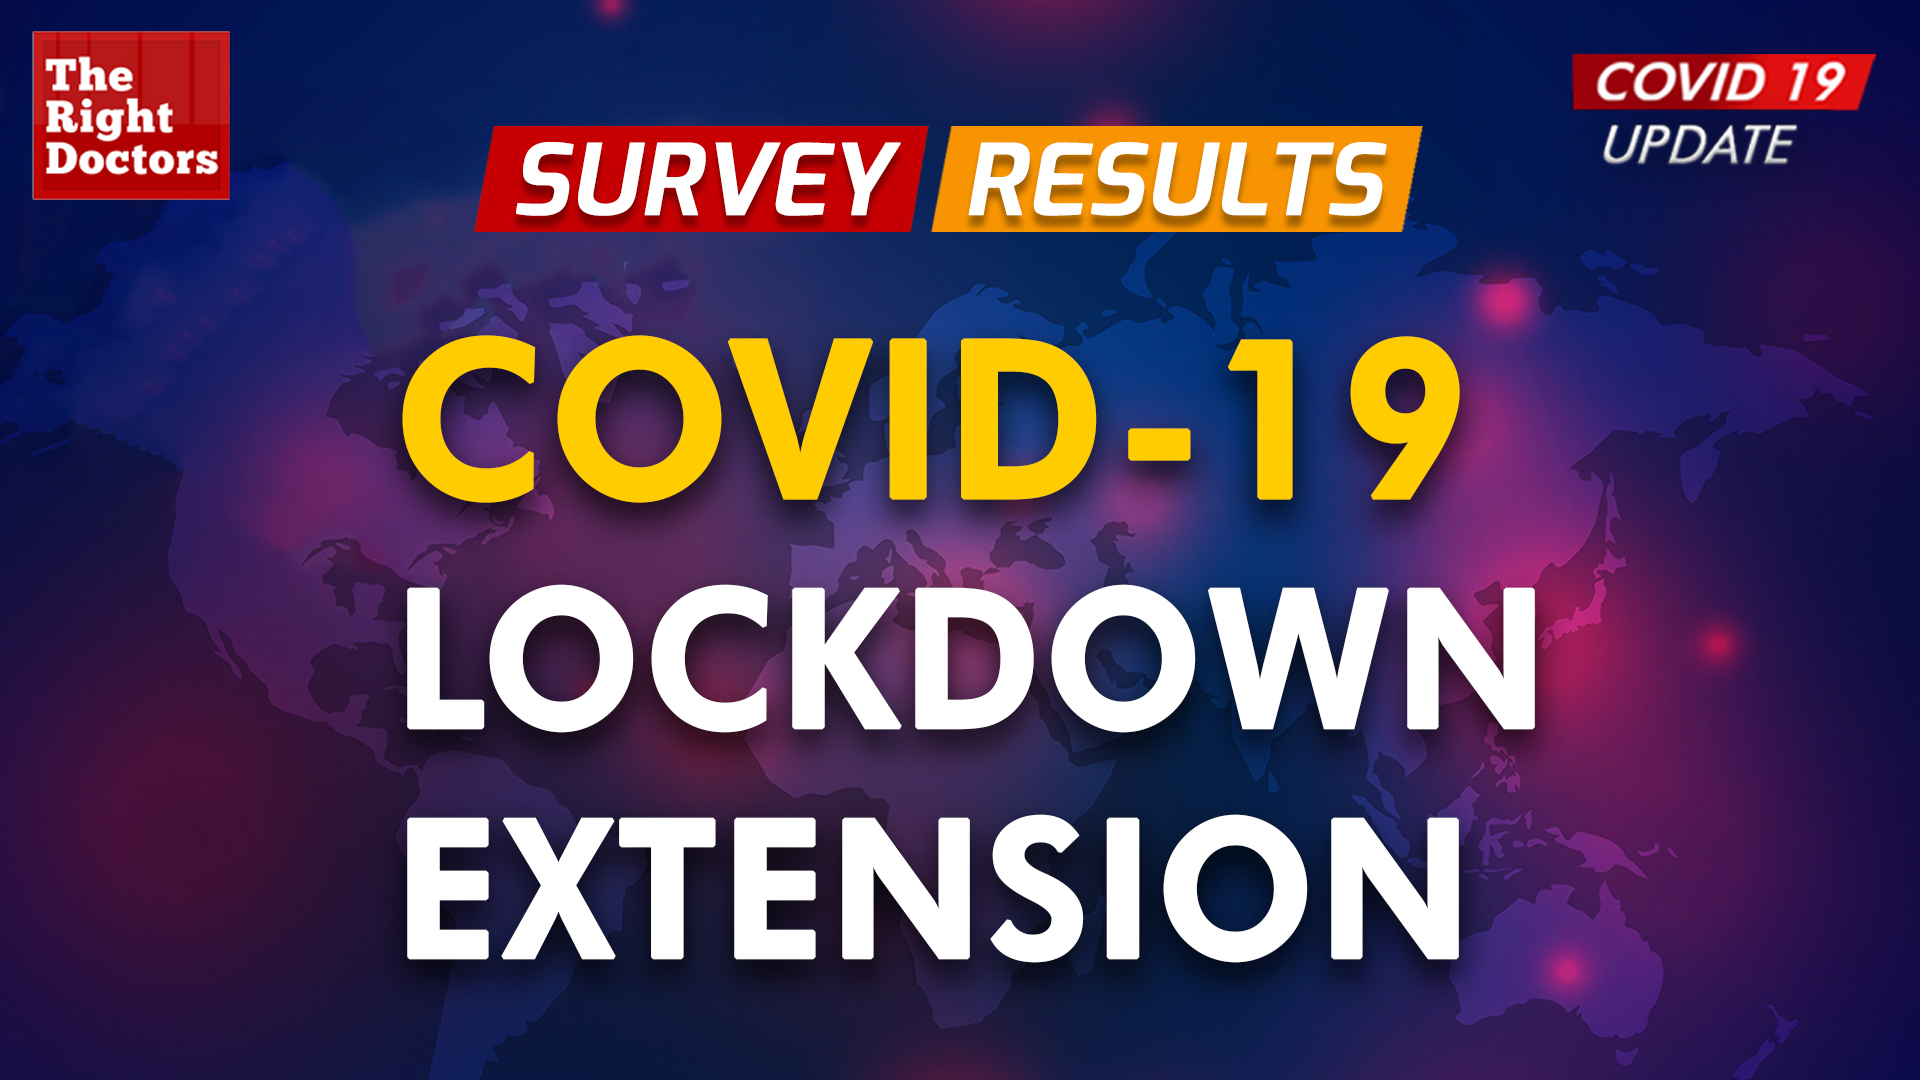 Covid-19 Extension Survey Results